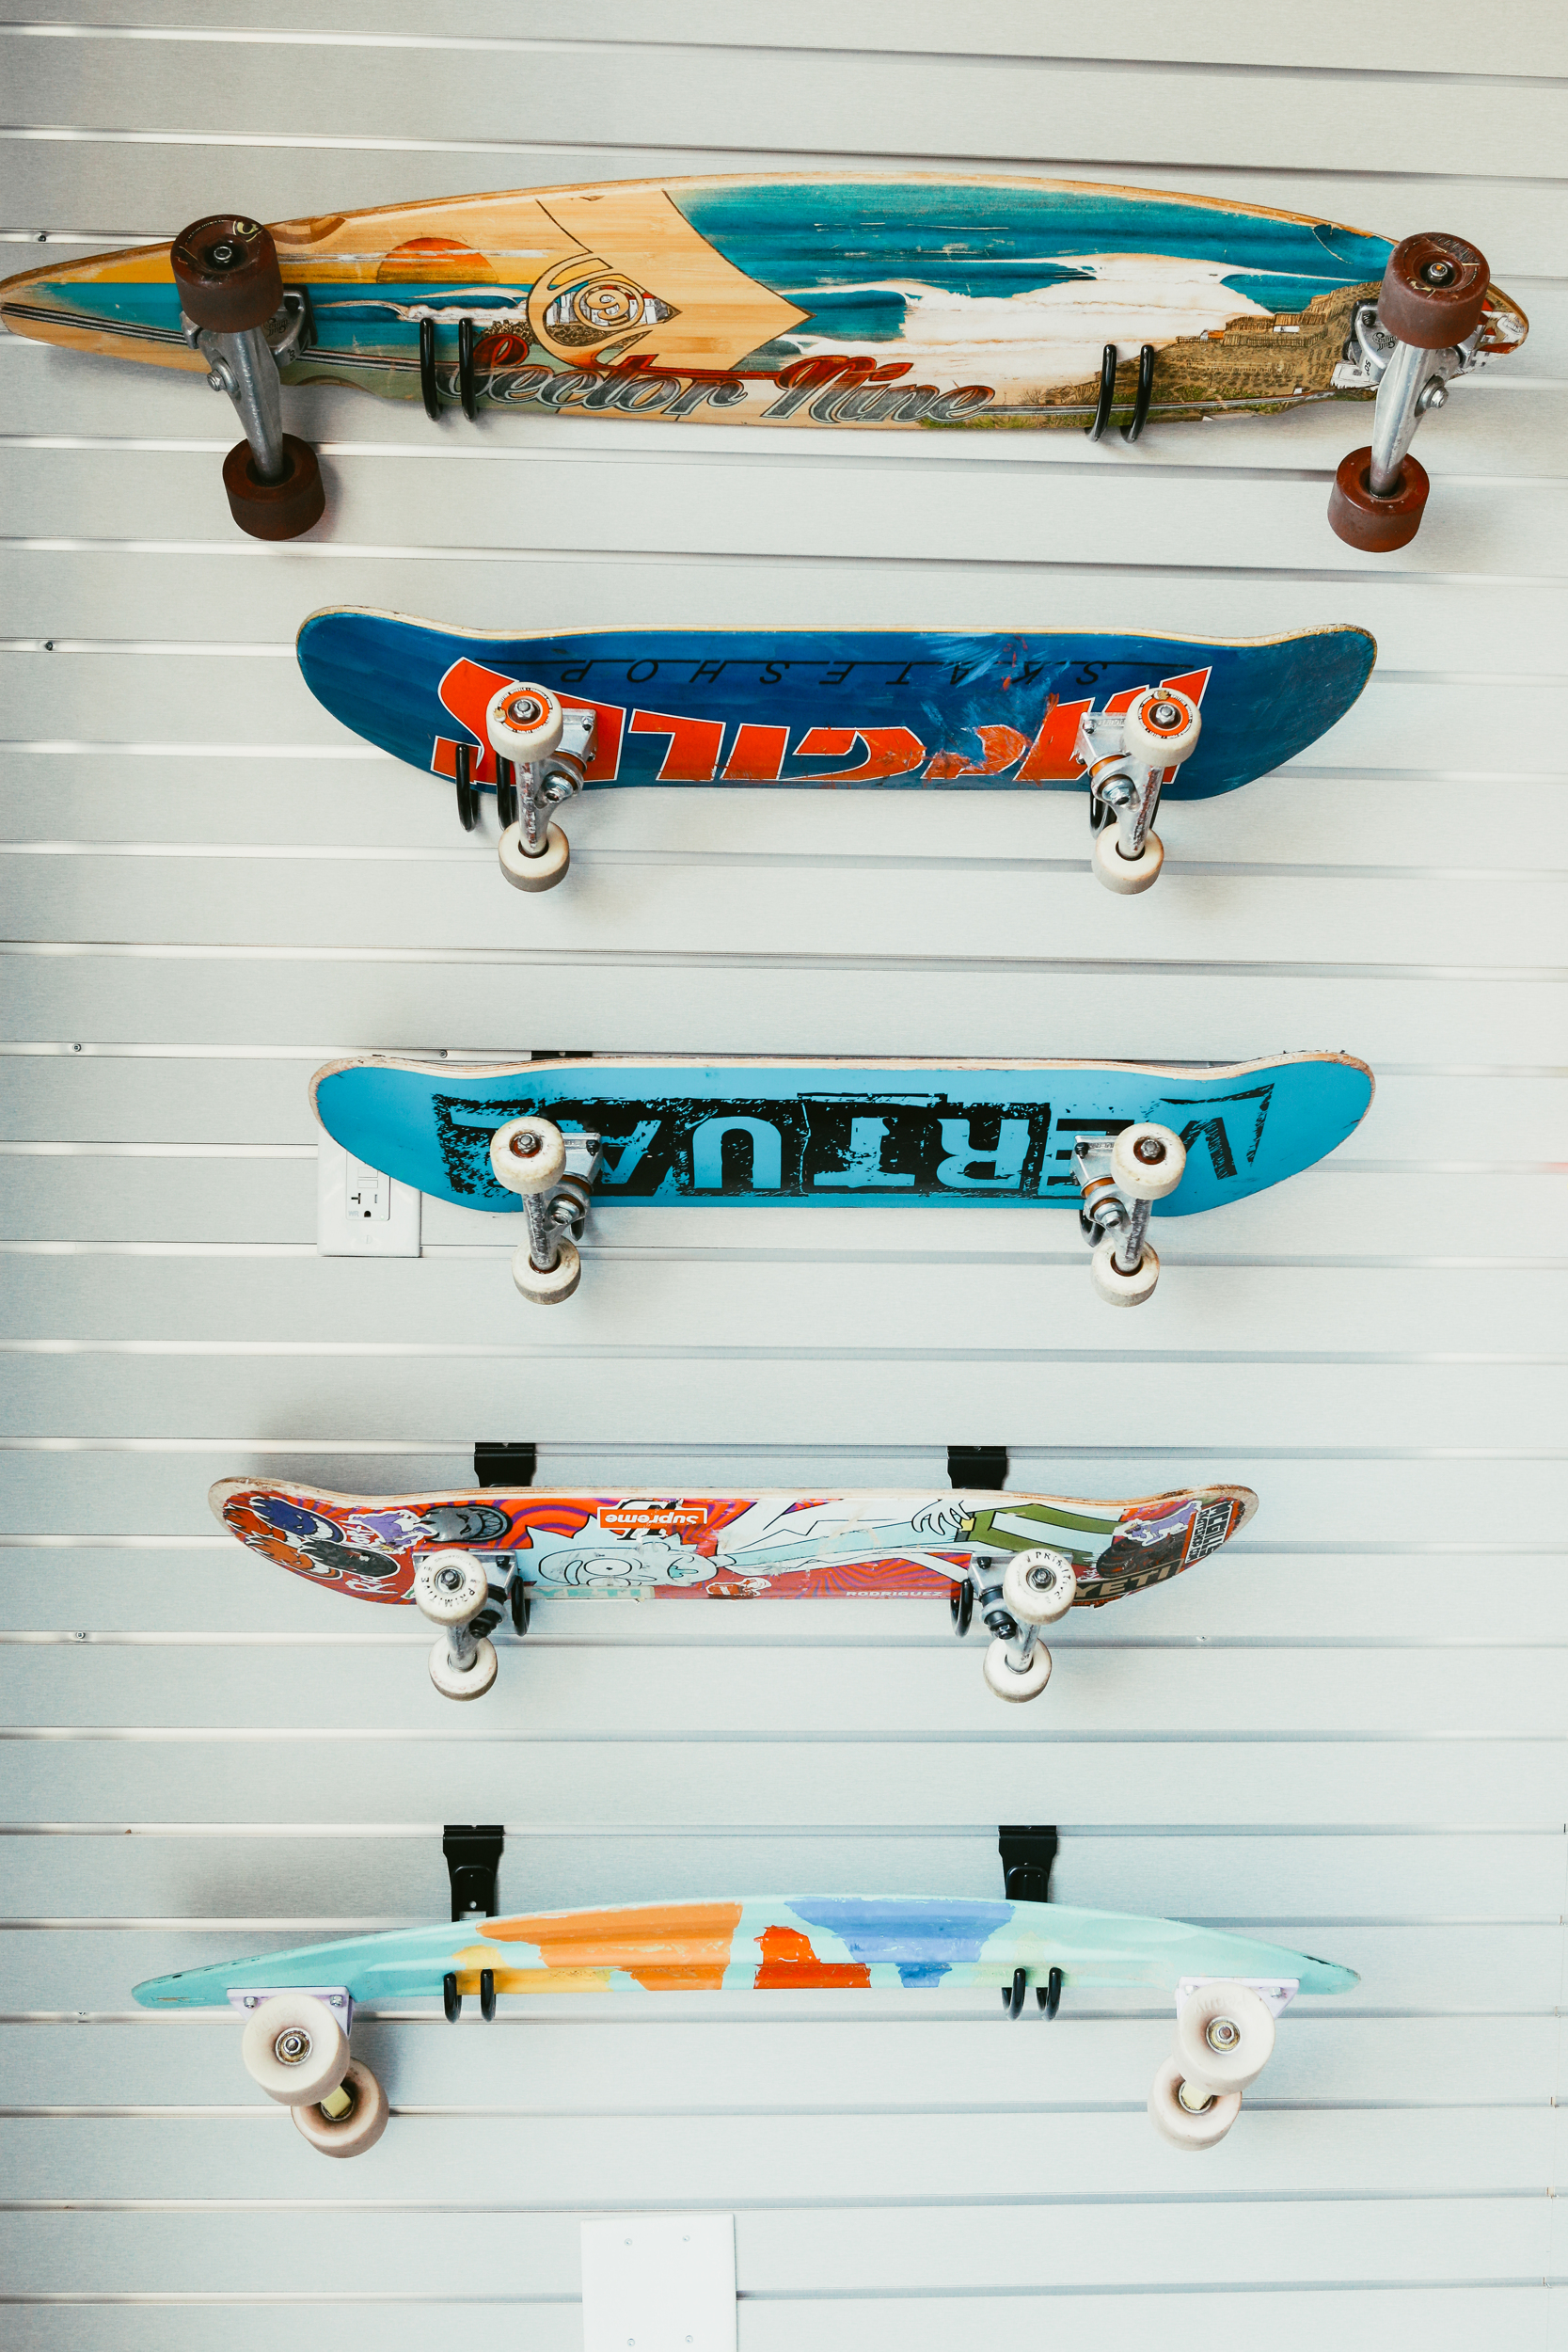 skateboards hanging on the wall